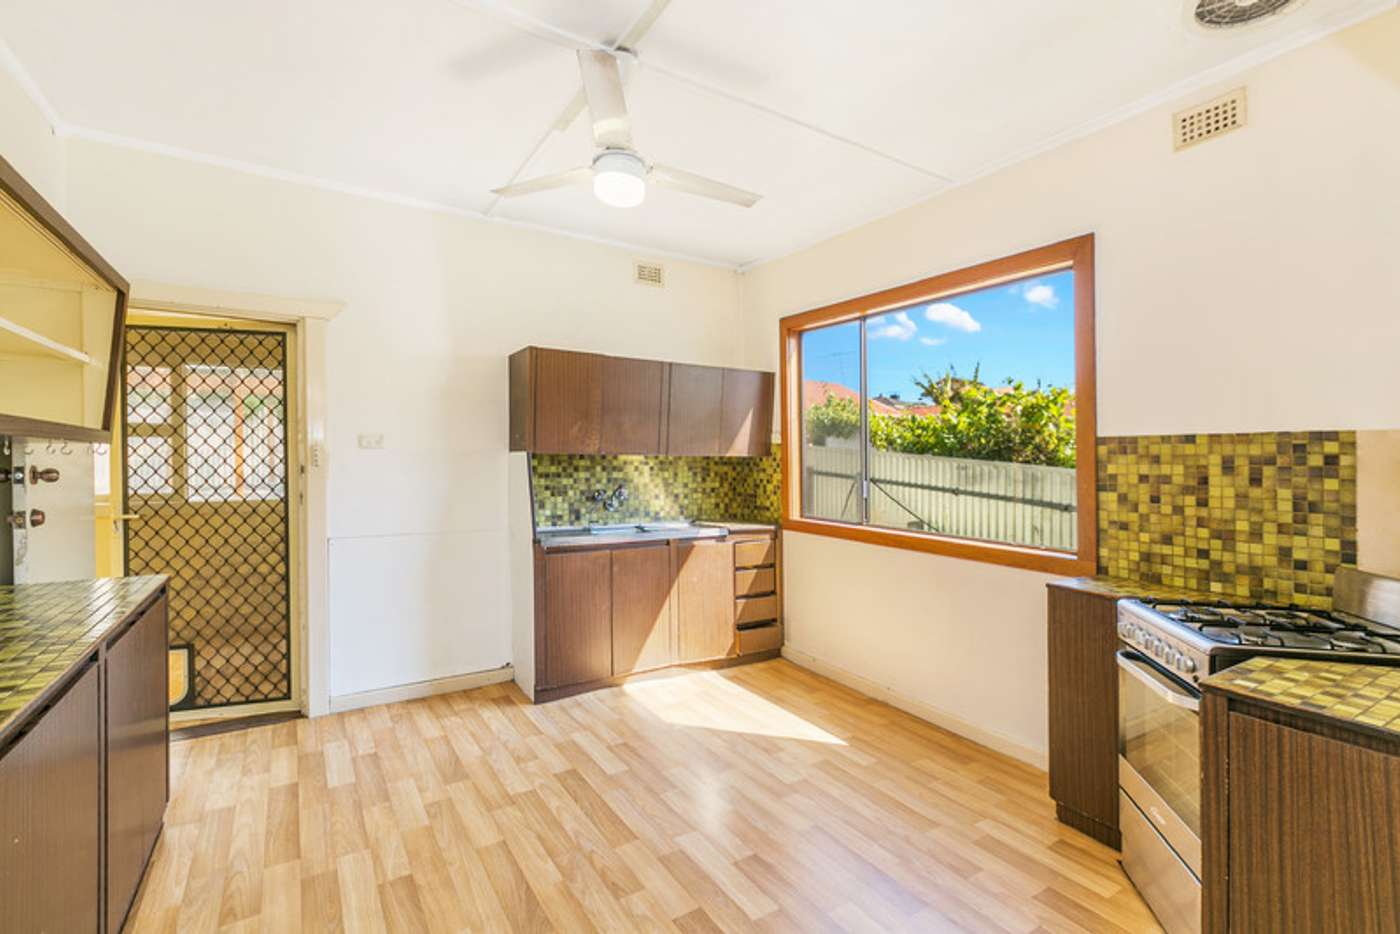 Fifth view of Homely house listing, 10 Gawler Street, Seaview Downs SA 5049